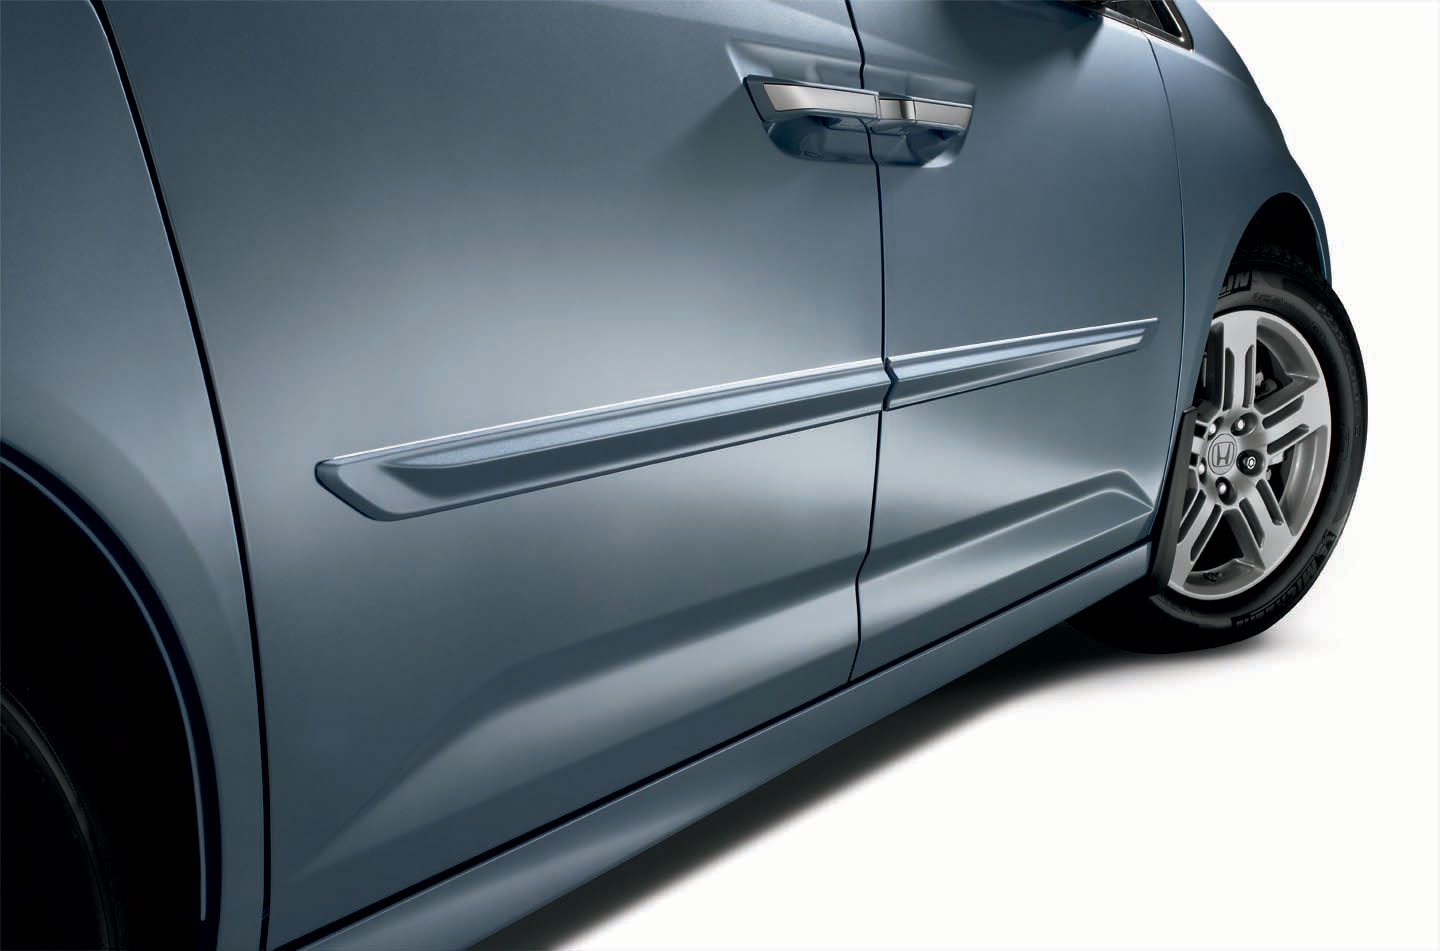 side body moldings custom molding odyssey automotive honda door rated number panels carid hondapartsdeals items